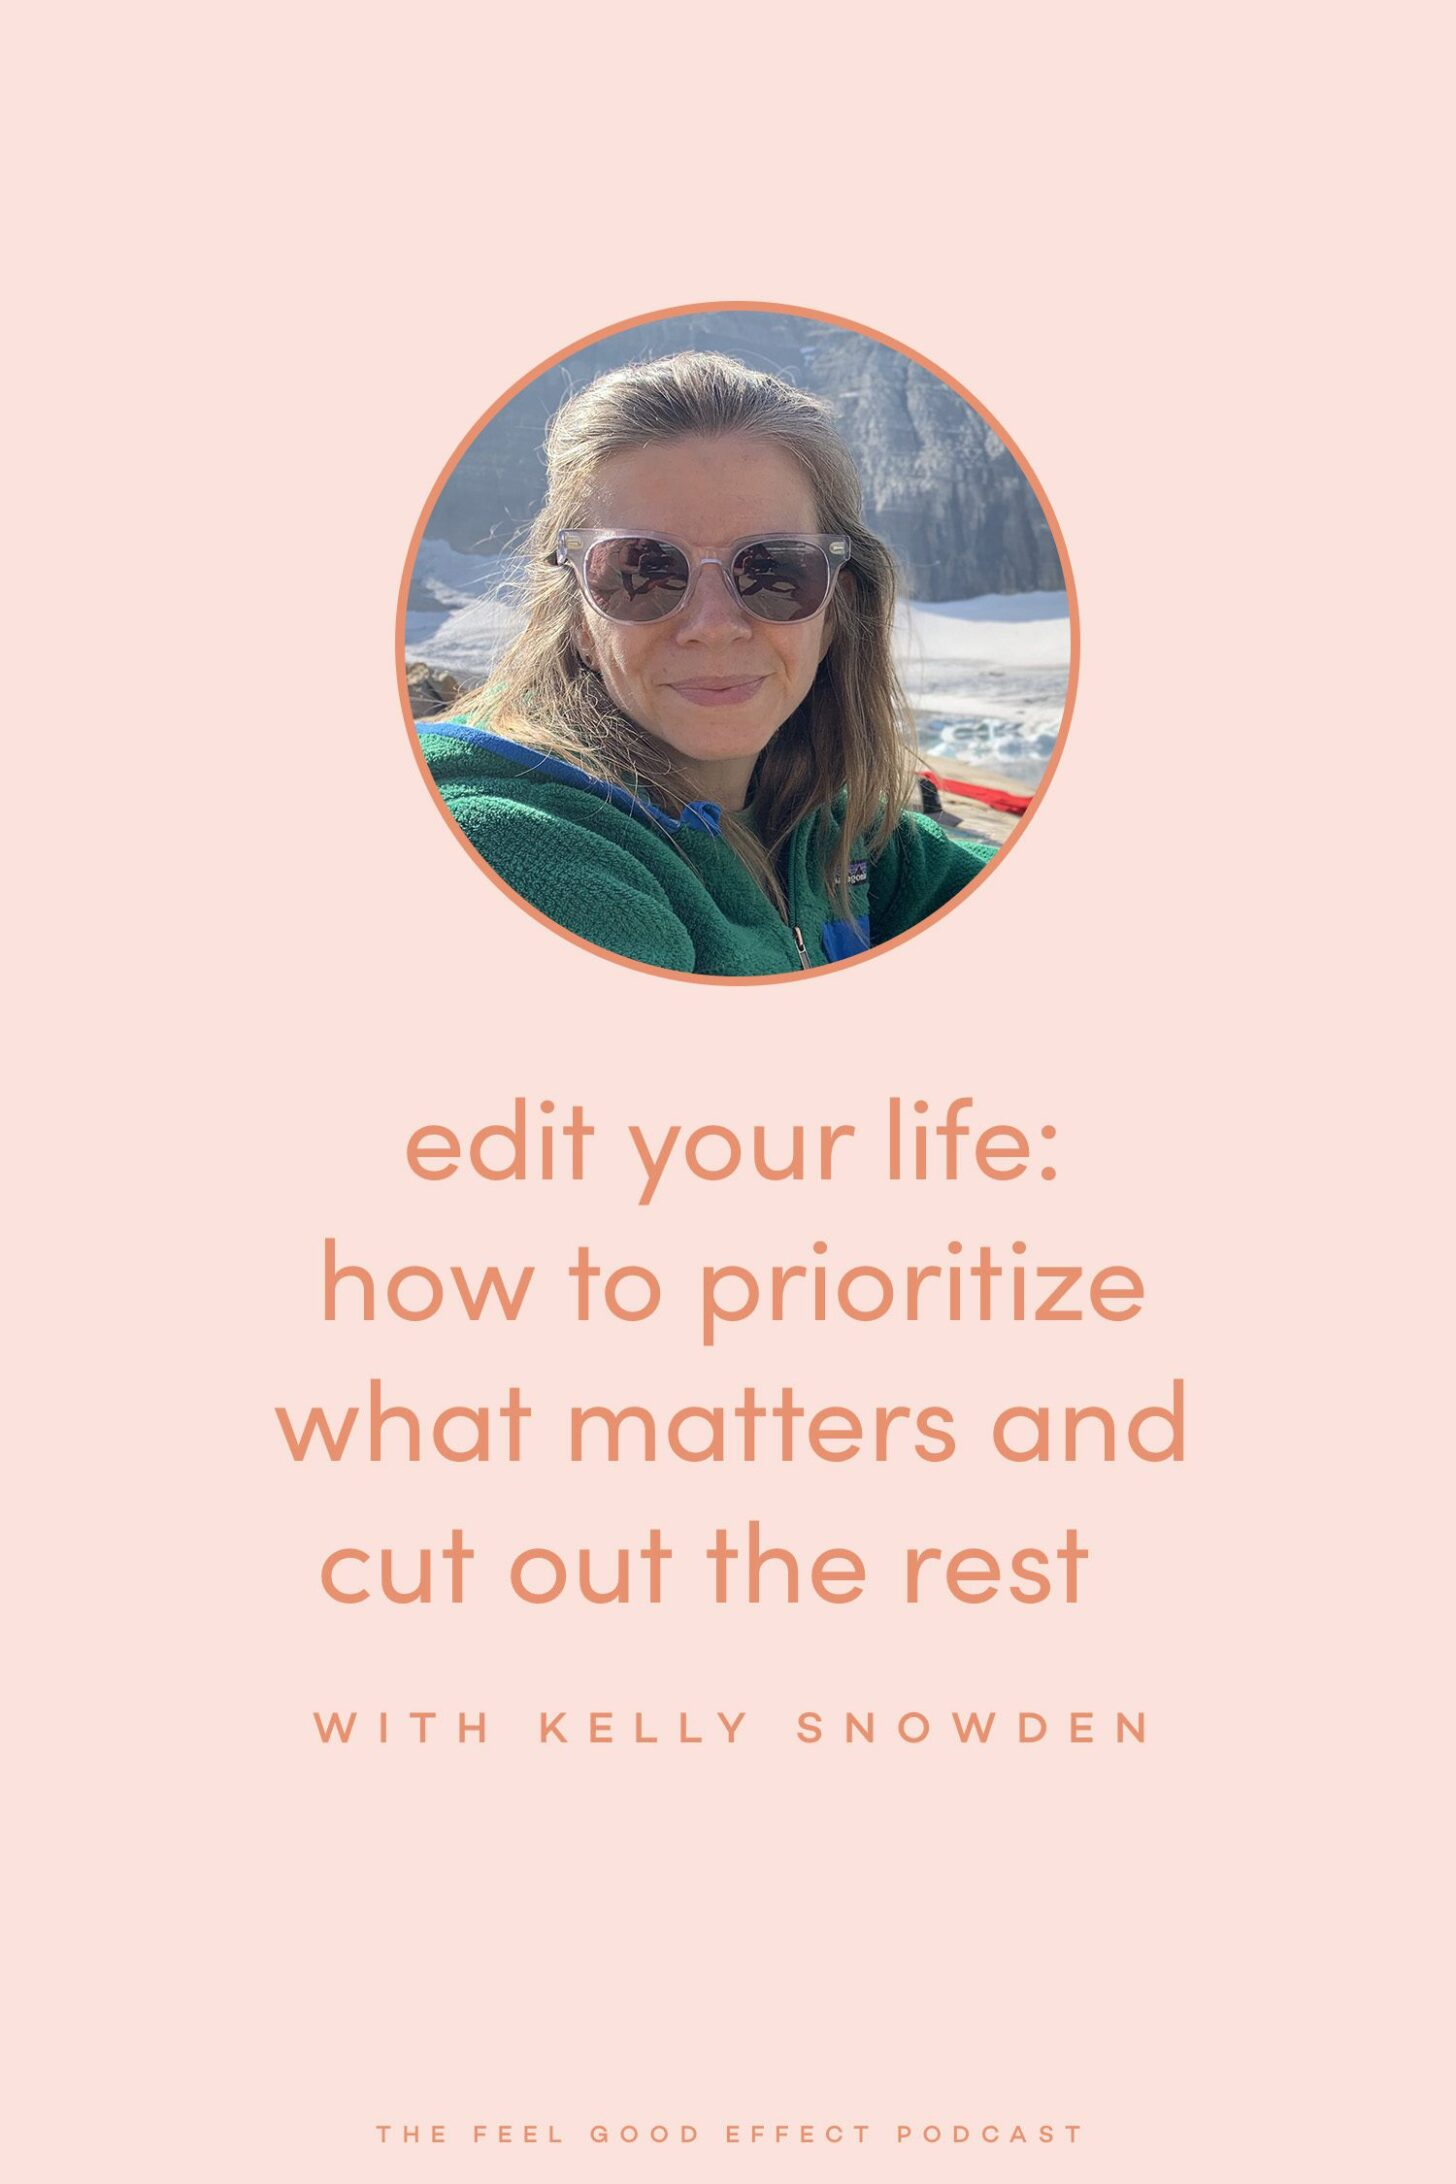 Edit Your Life: How to Prioritize What Matters and Cut Out The Rest with Kelly Snowden on the Feel Good Effect Podcast #realfoodwholelife #feelgoodeffectpodcast #setboundaries #priorities #editingtips